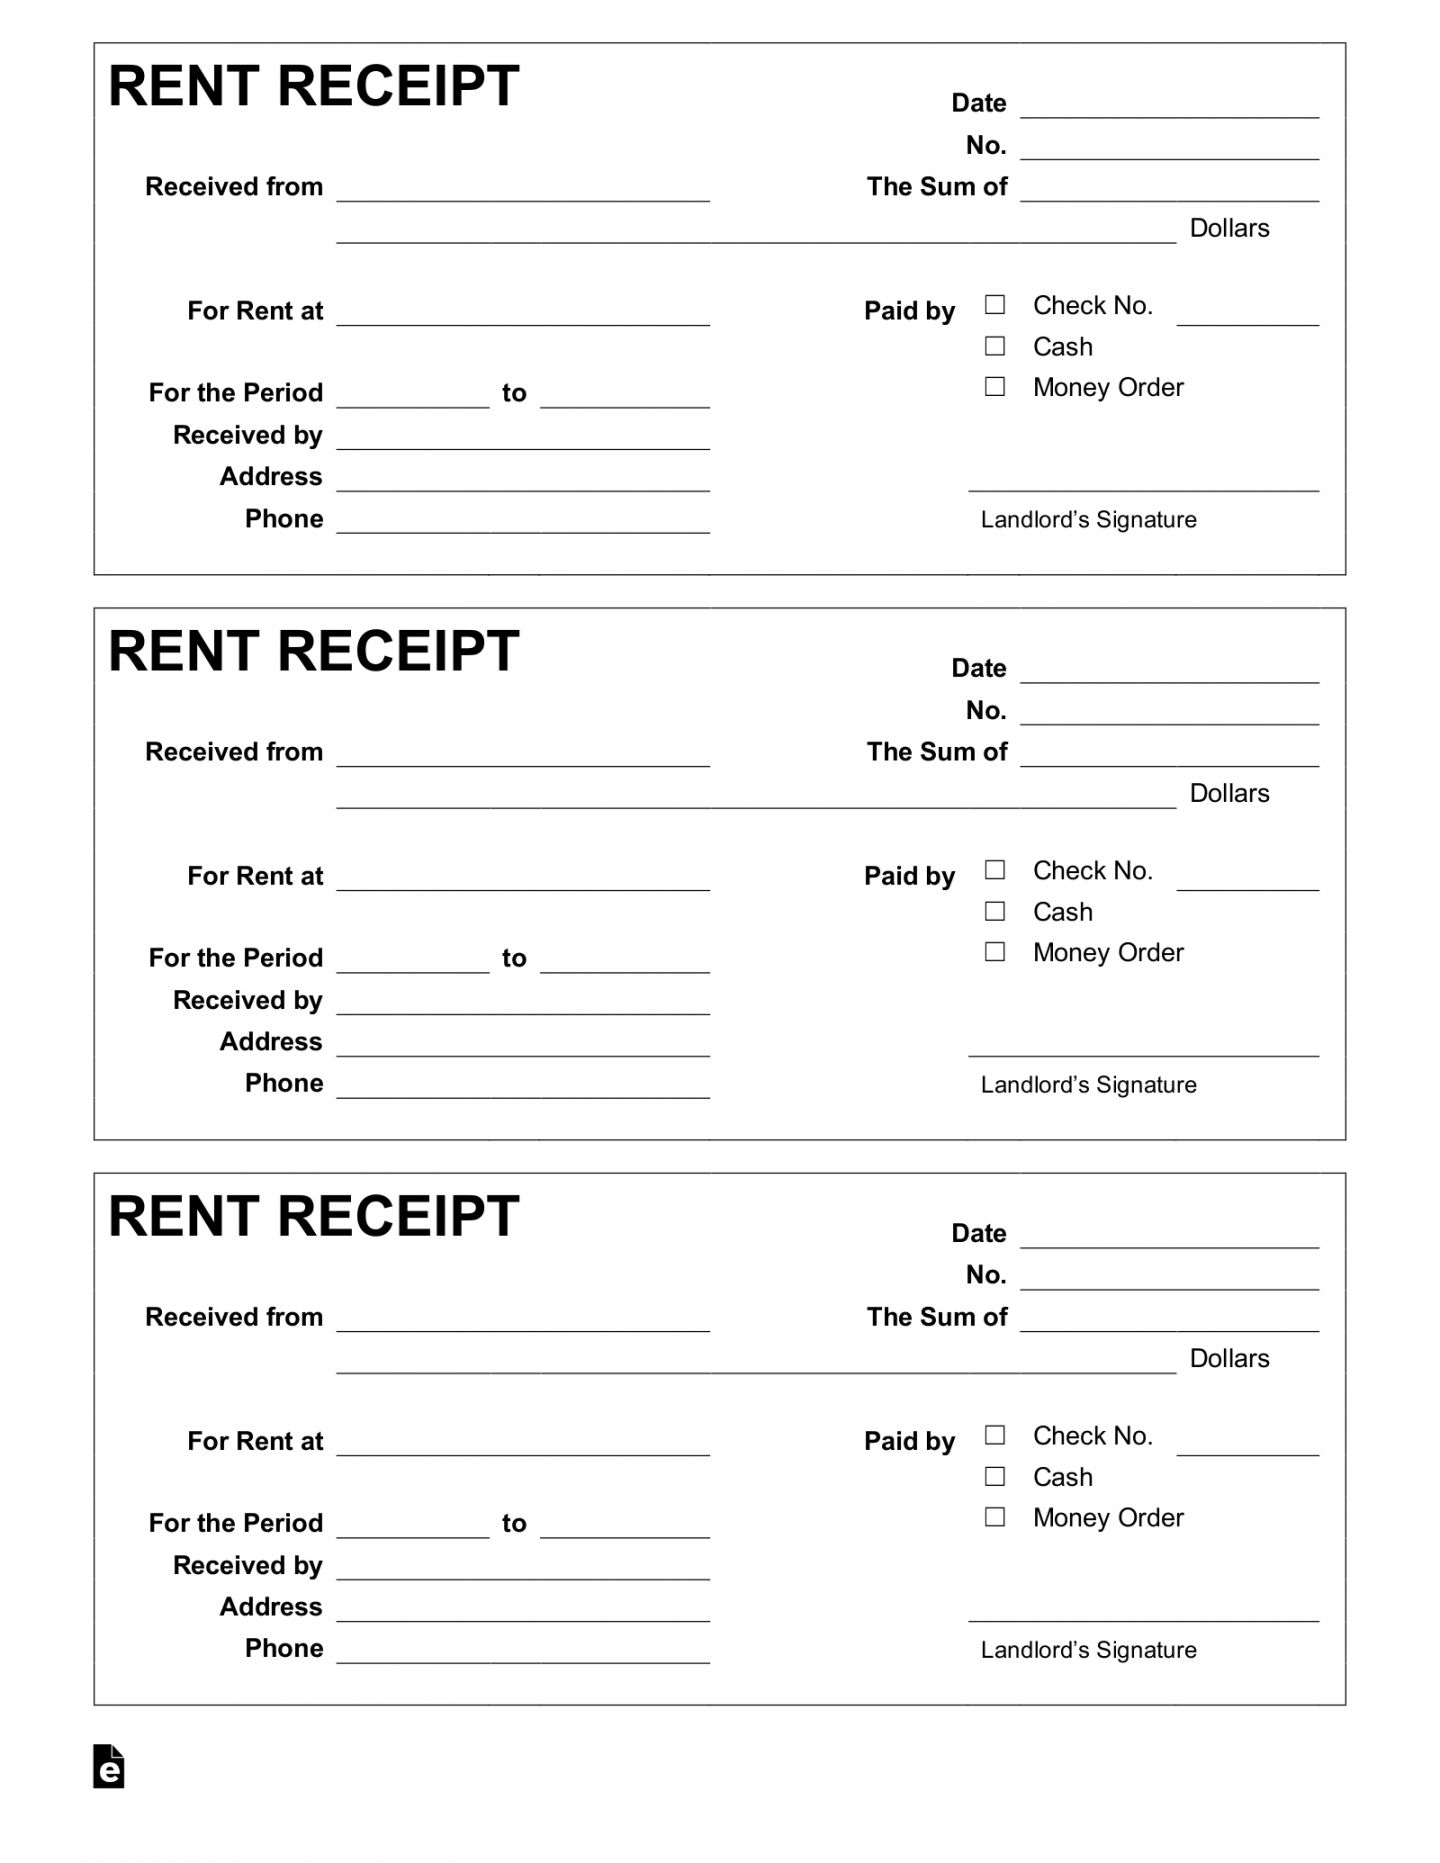 Get Our Free Receipt Template For Rent Payment Receipt Template Free Receipt Template Receipt